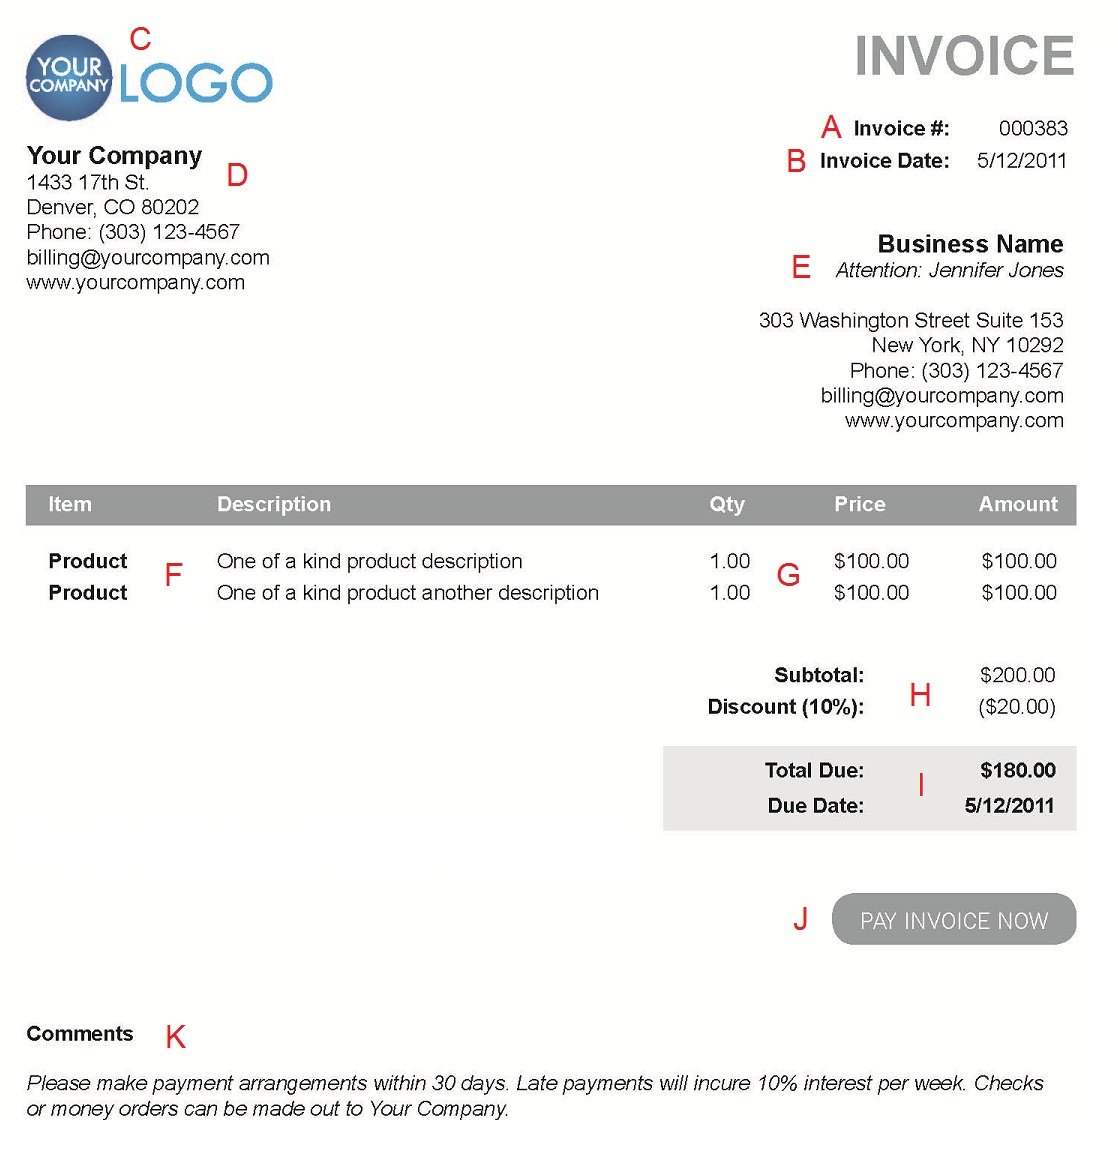 Coolmathgamesus  Scenic The  Different Sections Of An Electronic Payment Invoice With Exciting A  With Attractive Tax Invoice Generator Also Invoice Late Payment Terms In Addition Invoice Cost For New Cars And Best Invoicing App For Ipad As Well As Vat Invoice Sample Additionally Utility Invoice From Paysimplecom With Coolmathgamesus  Exciting The  Different Sections Of An Electronic Payment Invoice With Attractive A  And Scenic Tax Invoice Generator Also Invoice Late Payment Terms In Addition Invoice Cost For New Cars From Paysimplecom